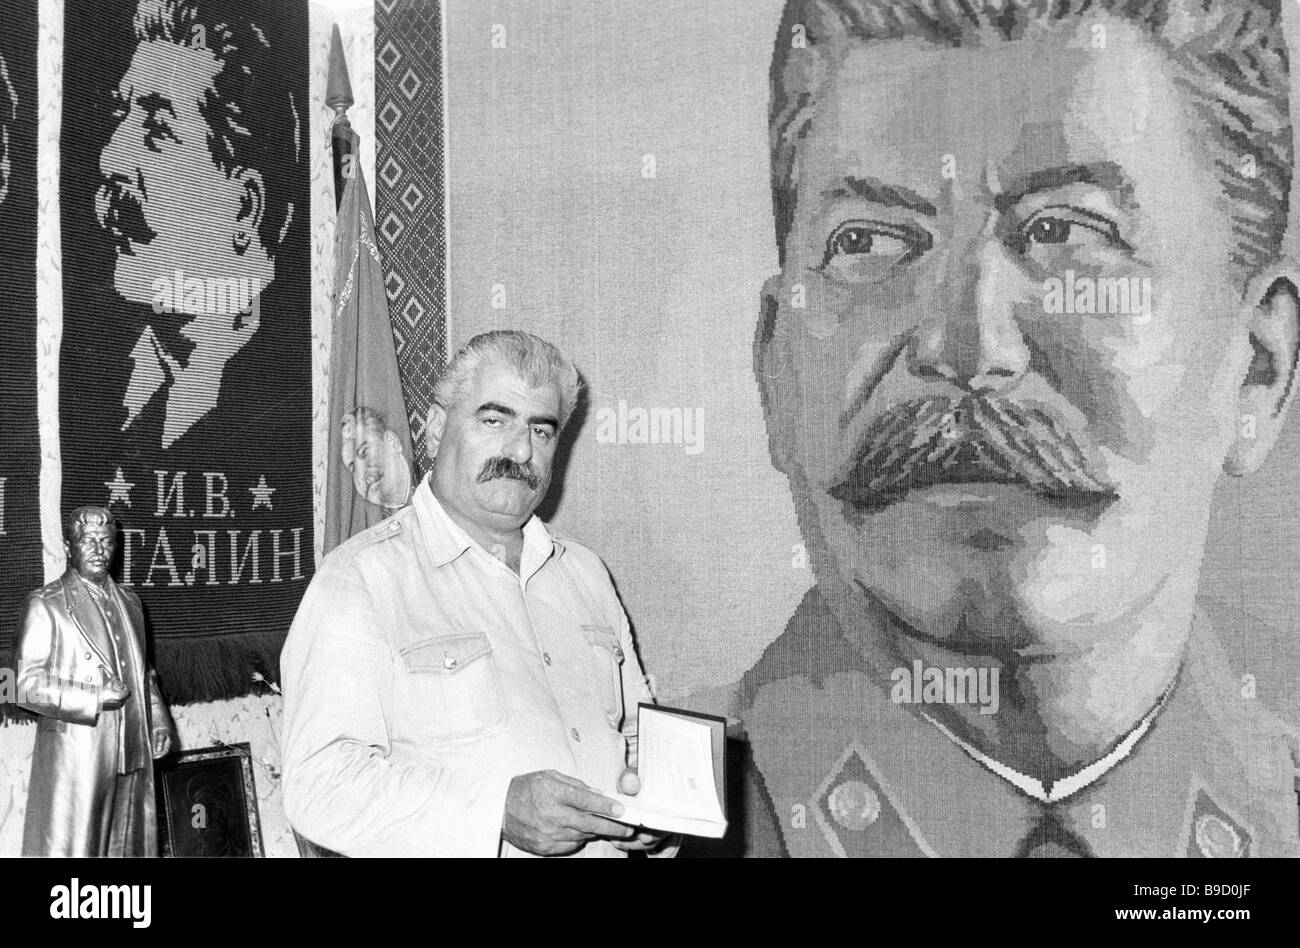 Batumi sea port dock worker Guram Kakhidze with his private collection of items related to Josef Stalin s life - Stock Image